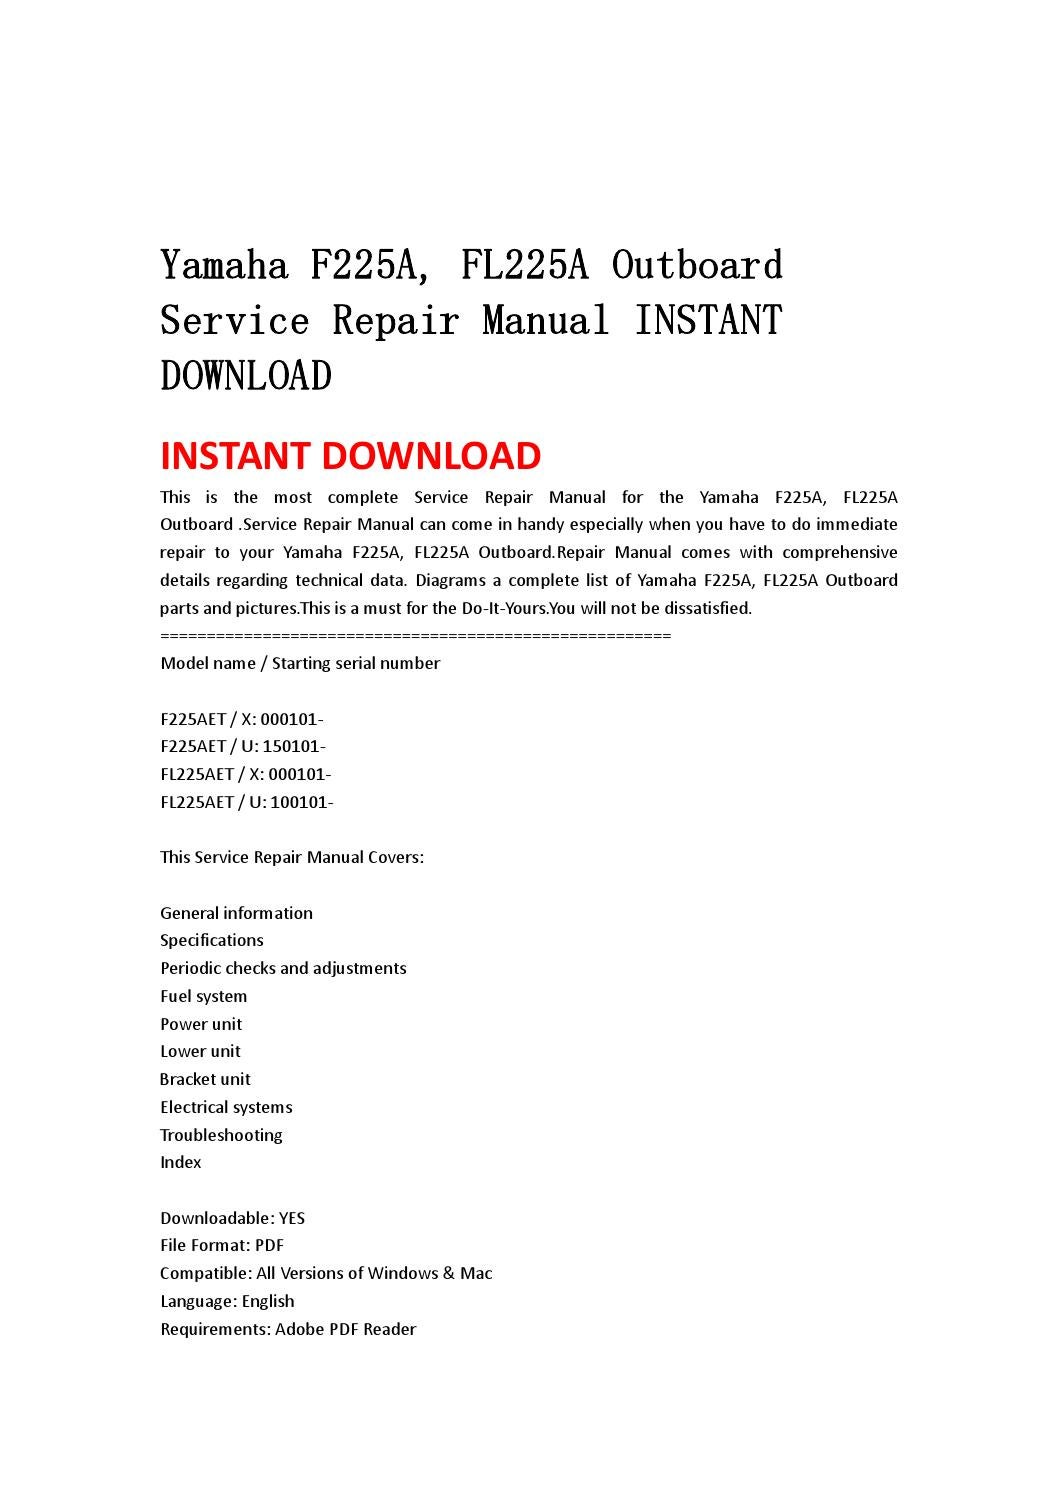 Yamaha f225a, fl225a outboard service repair manual instant